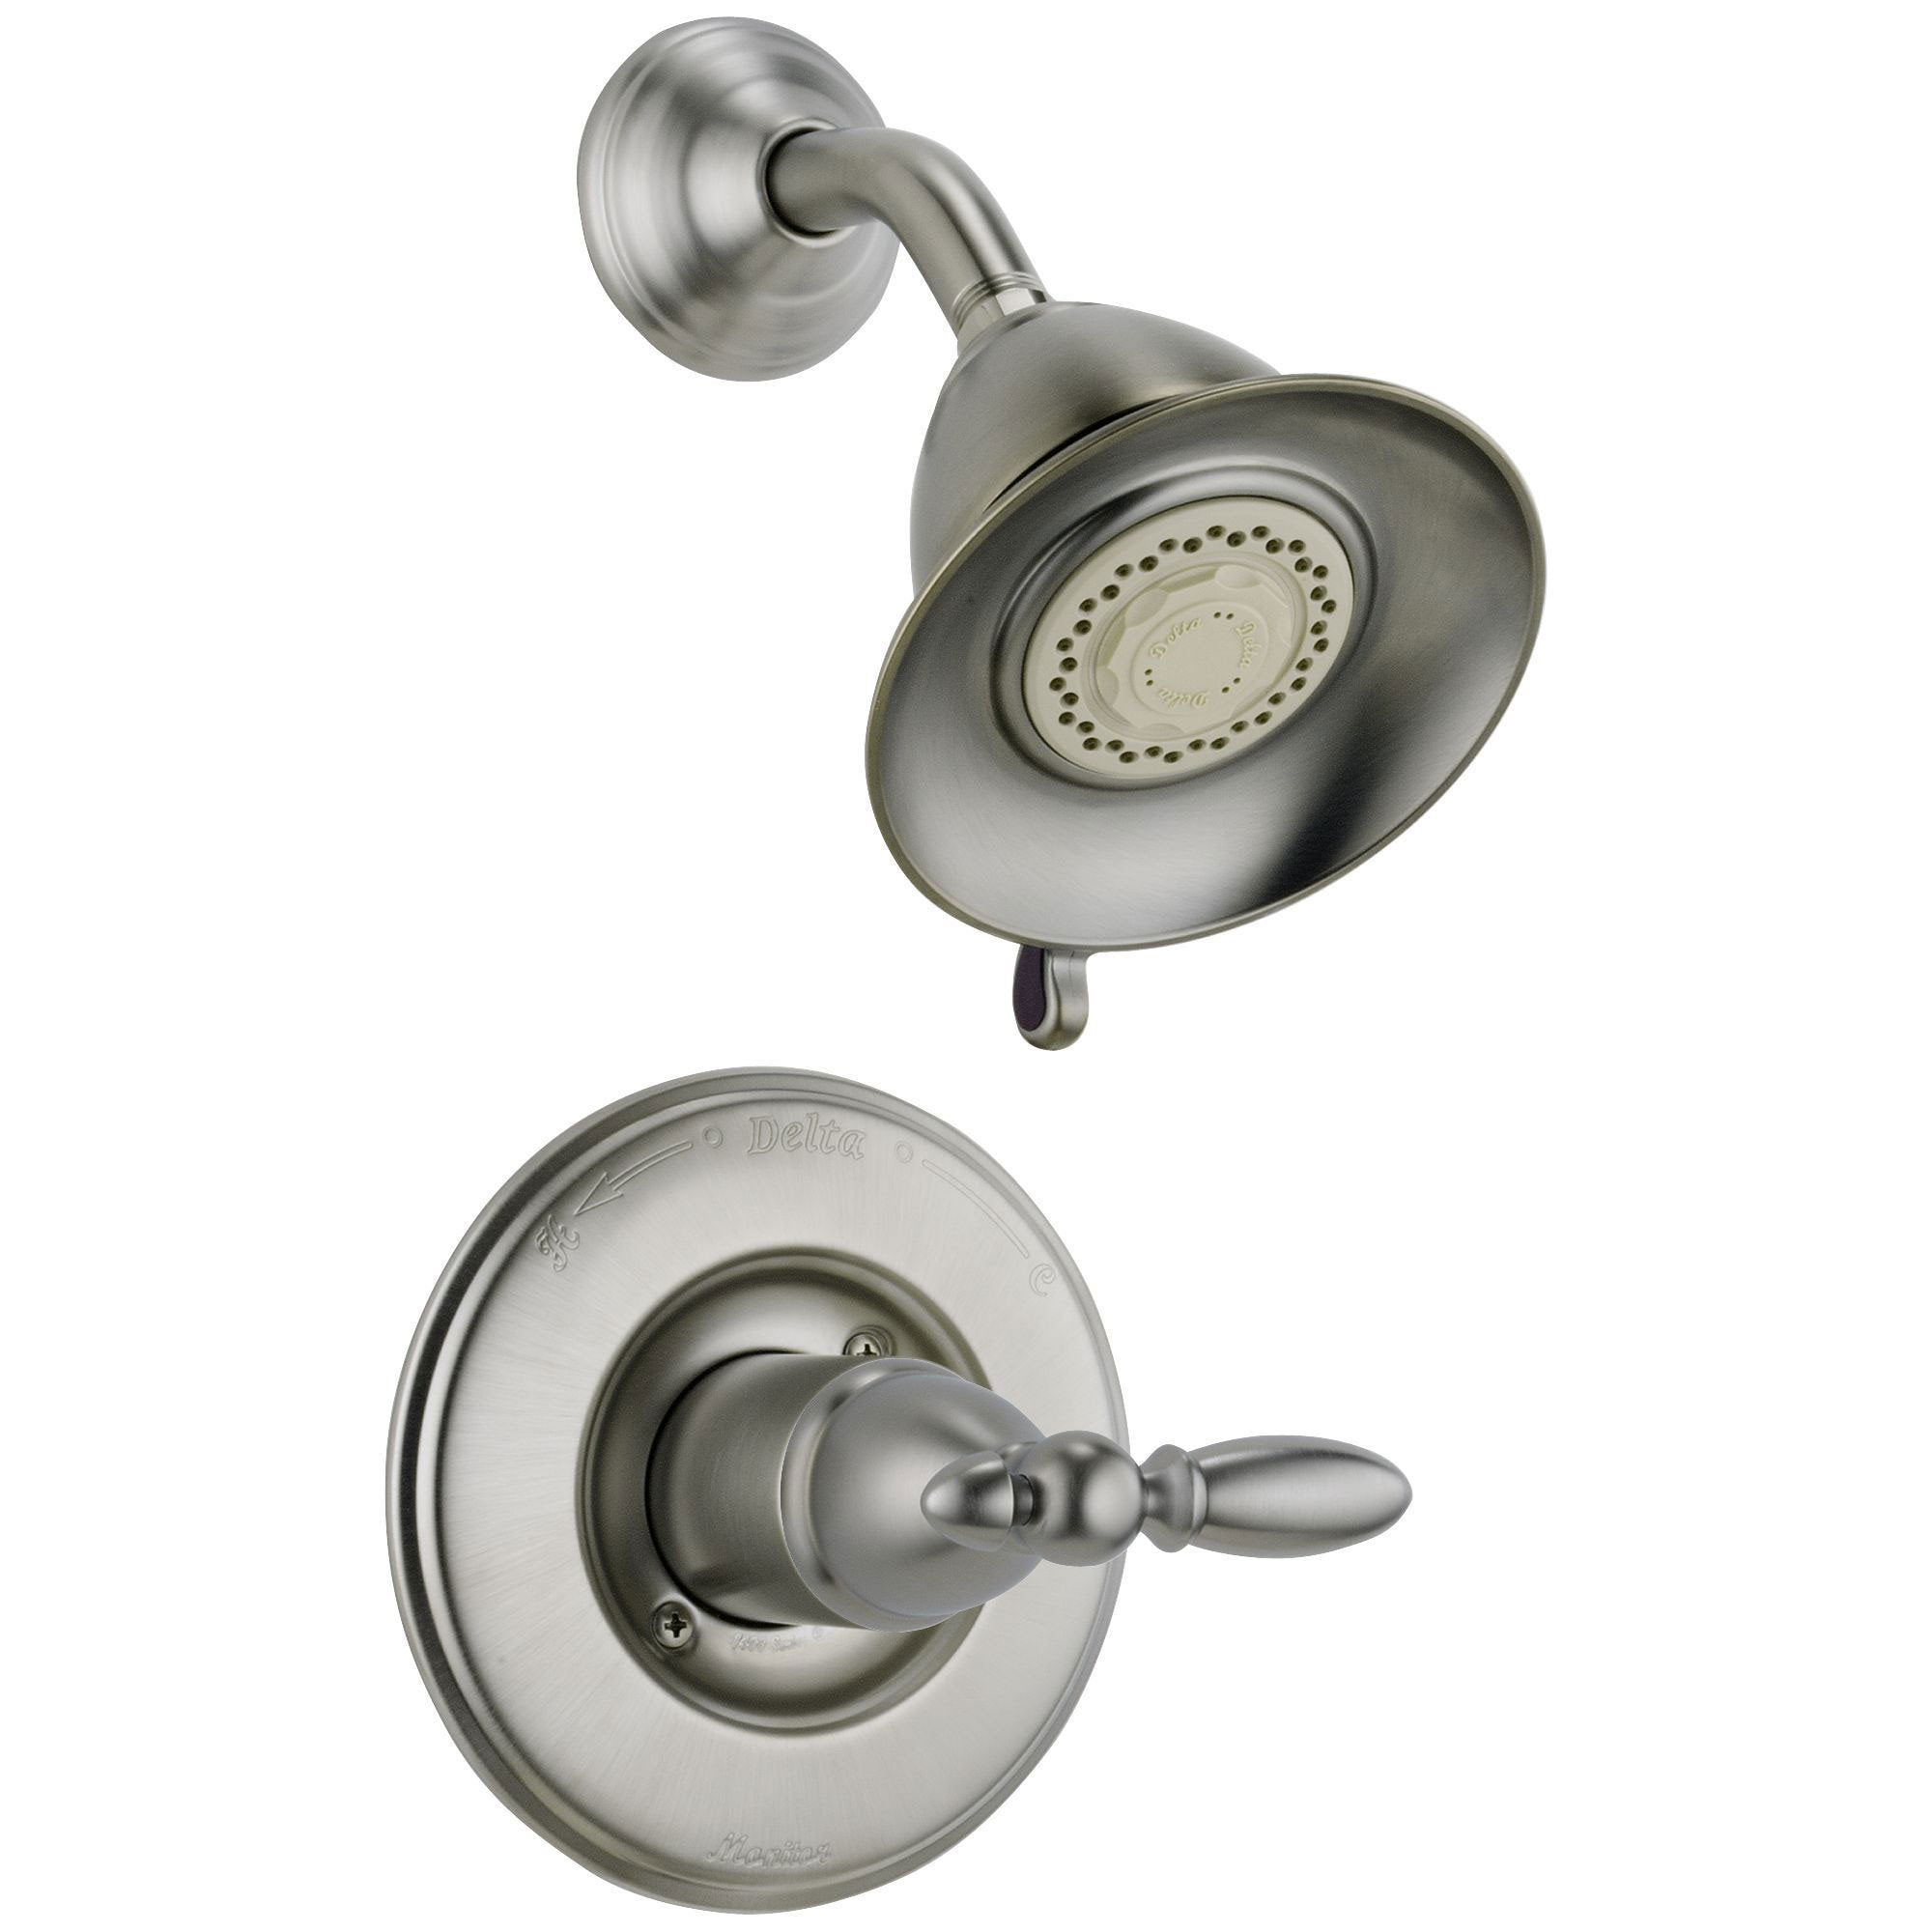 Delta Traditional Victorian Stainless Steel Finish 14 Series Shower Only Faucet INCLUDES Rough-in Valve and Single Lever Handle D1194V